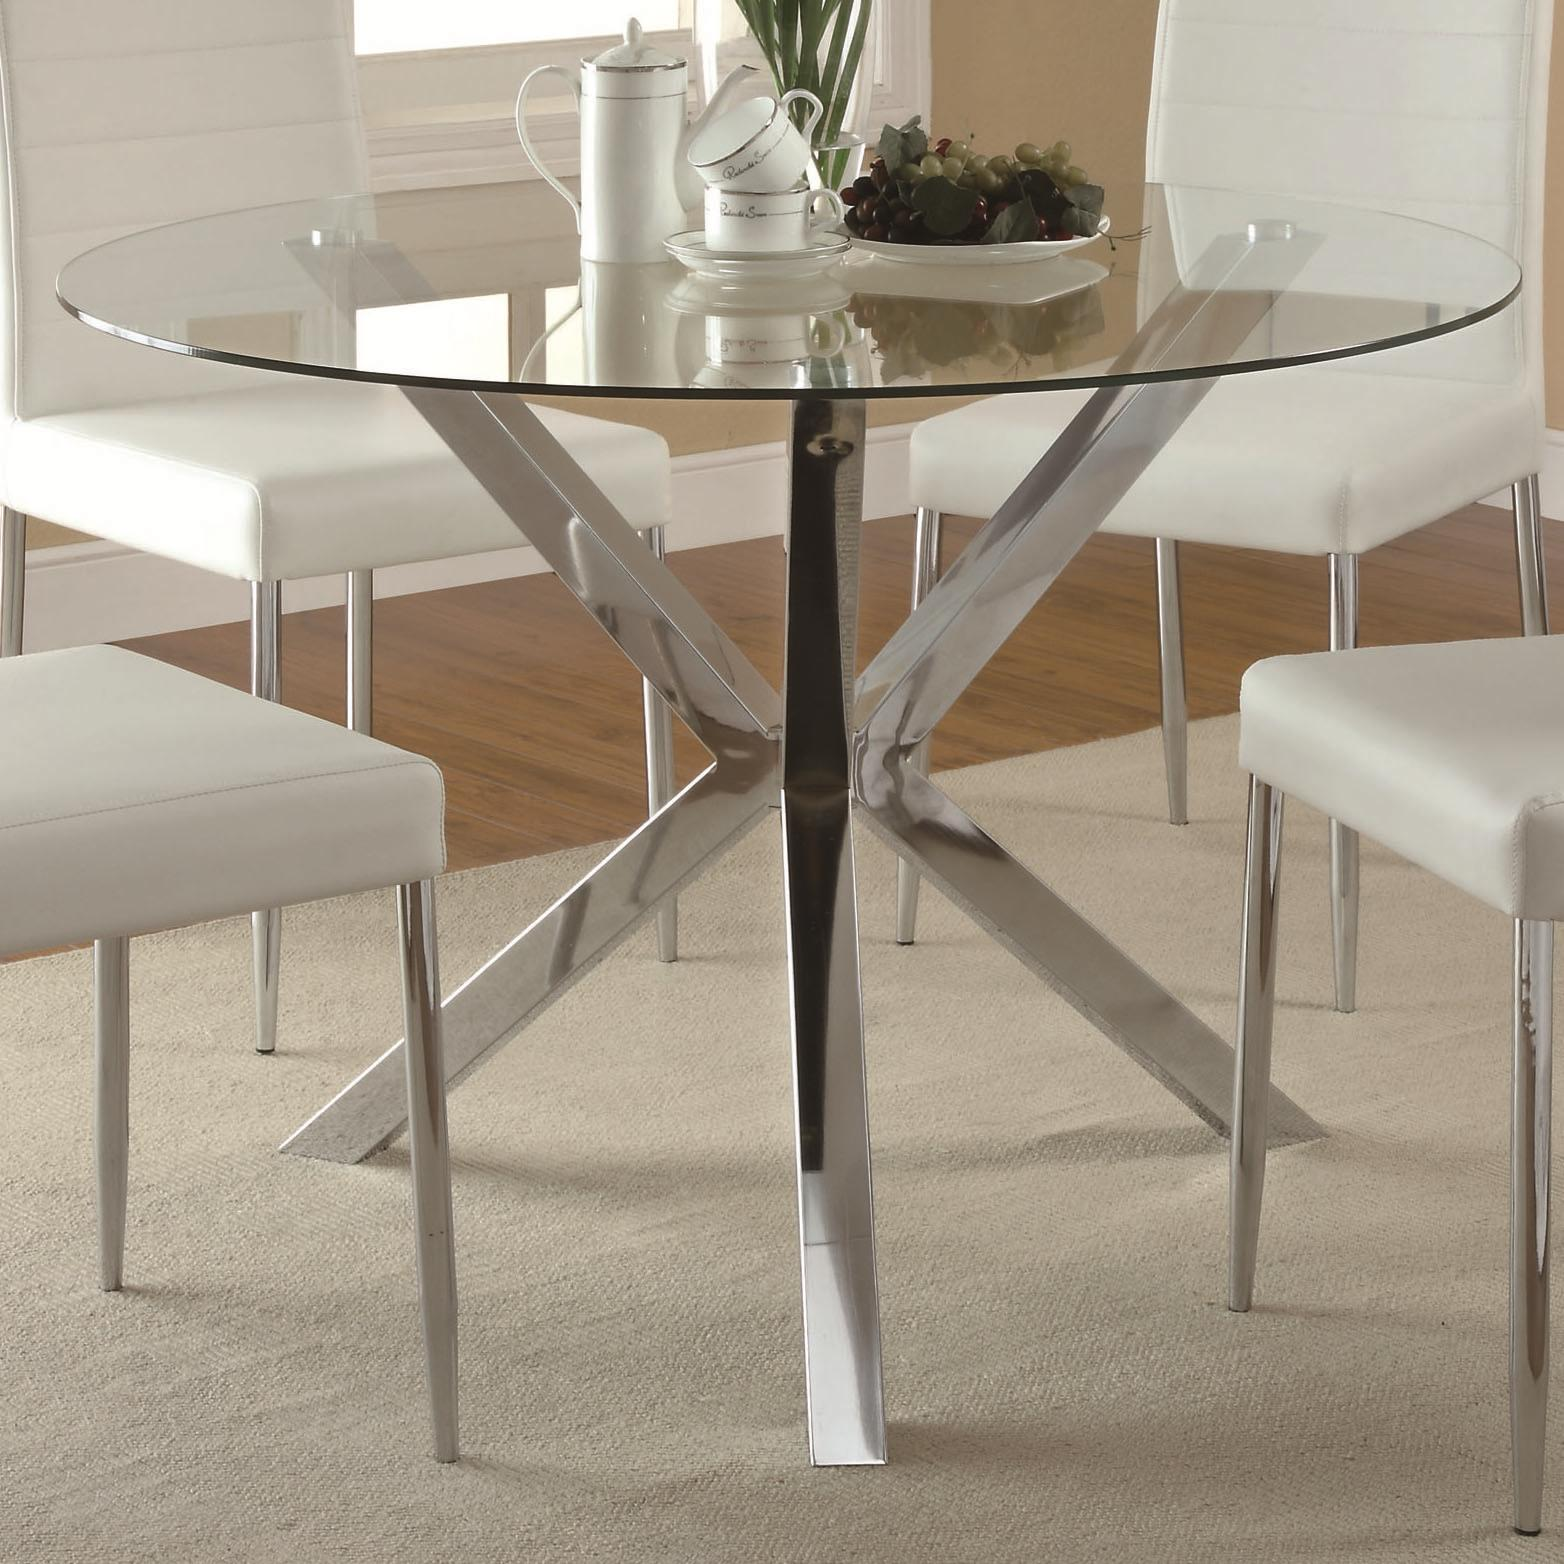 Coaster vance 120760 contemporary glass top dining table for Unusual glass dining tables